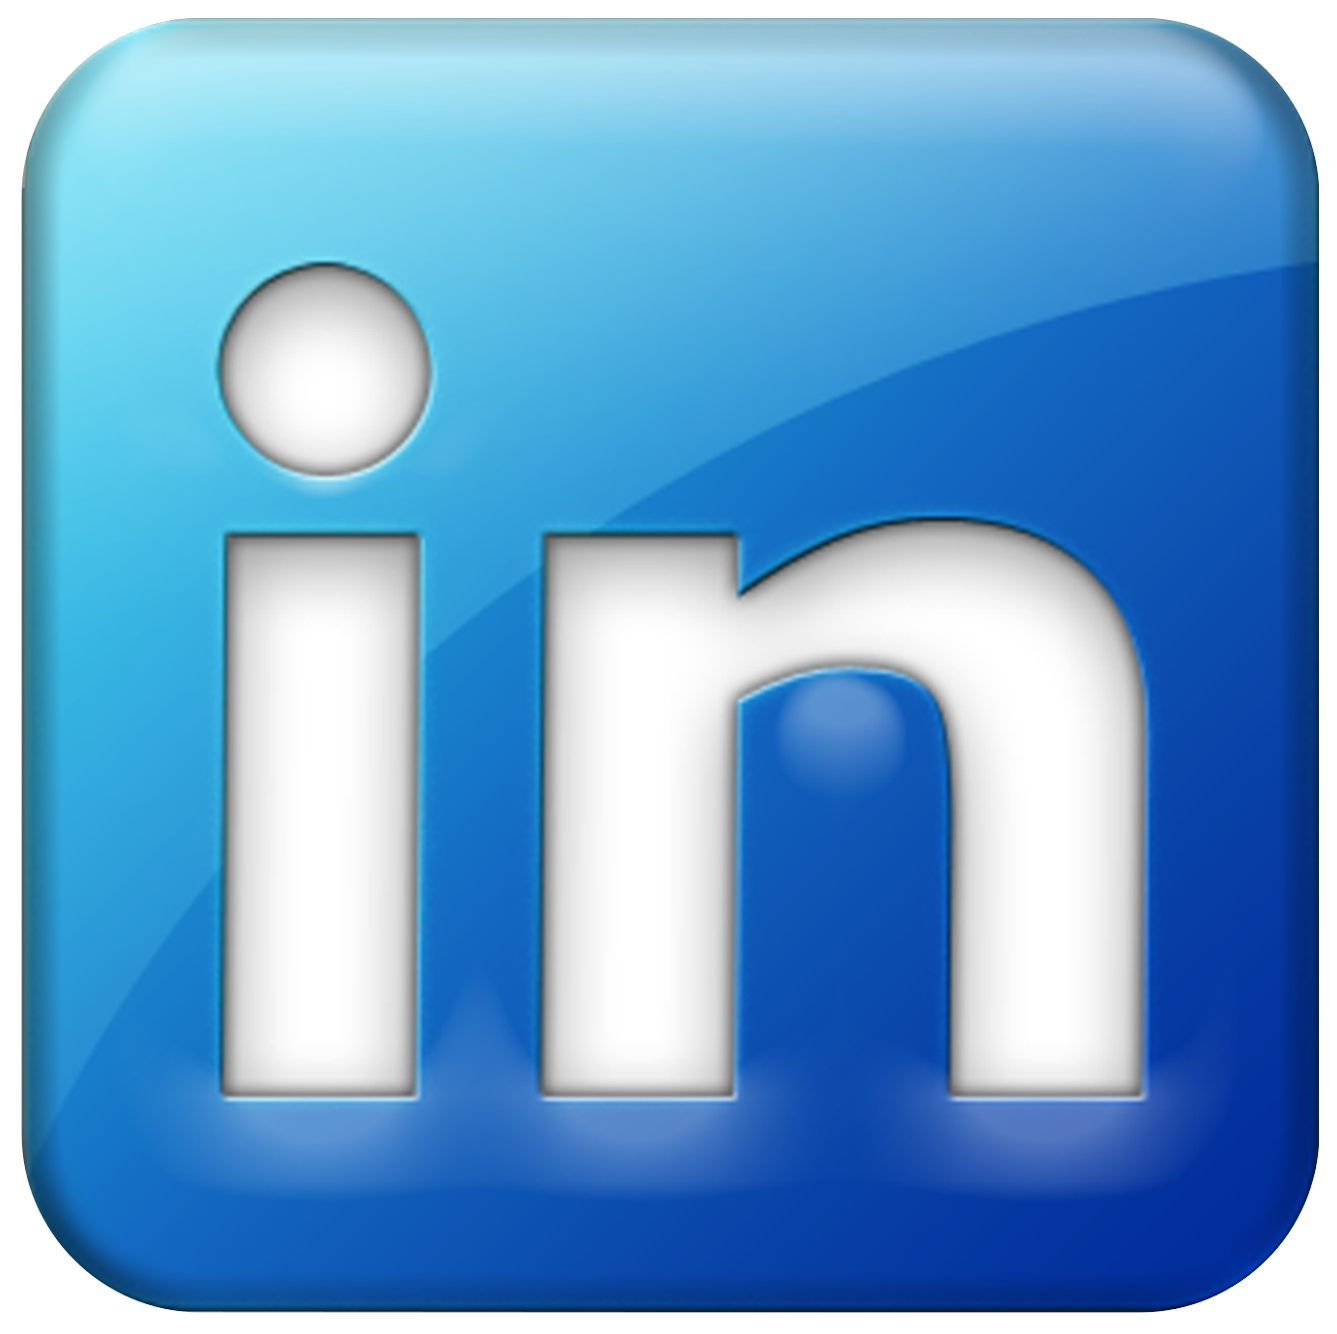 Official twitter clipart 2015 png royalty free stock Linkedin Logo Clipart - Clipart Kid png royalty free stock